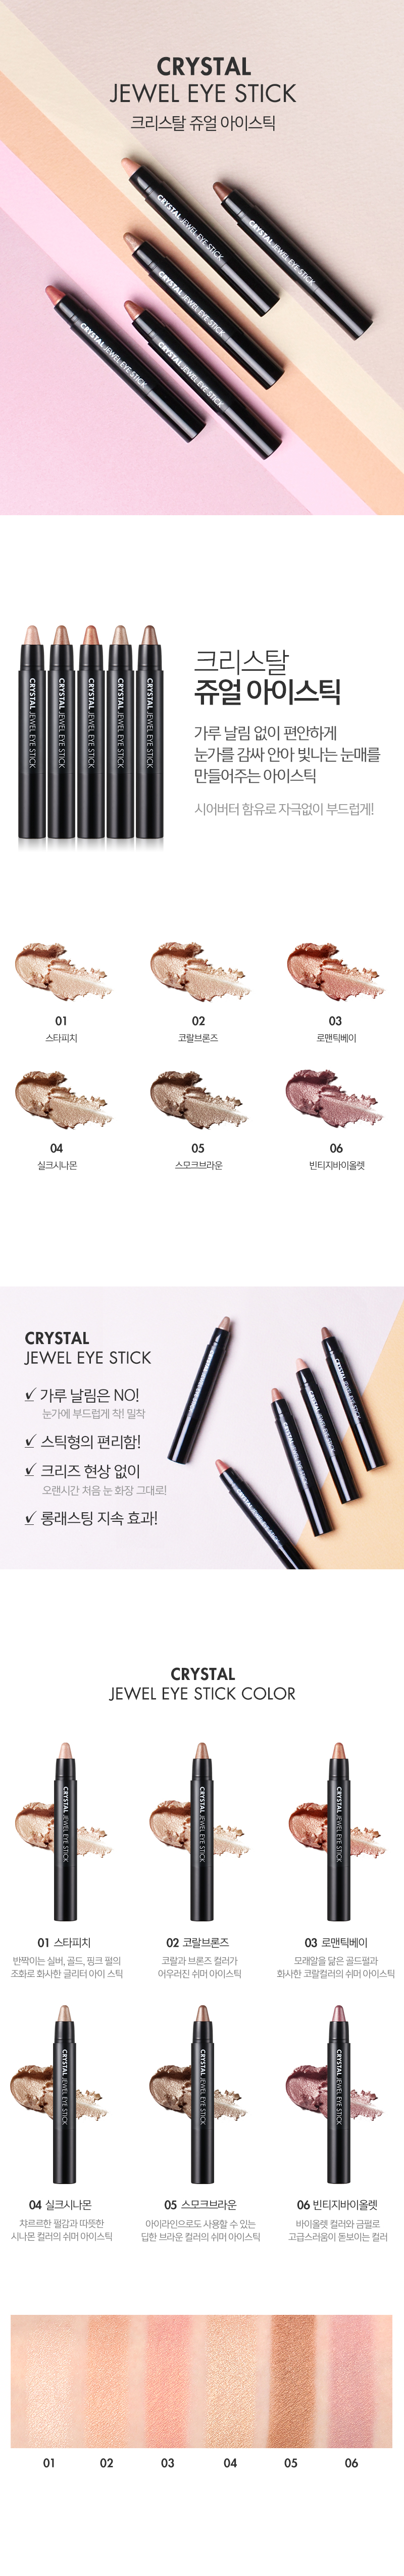 Tony Moly Crystal Jewel Eye Stick 1.7g malaysia singapore indonesia